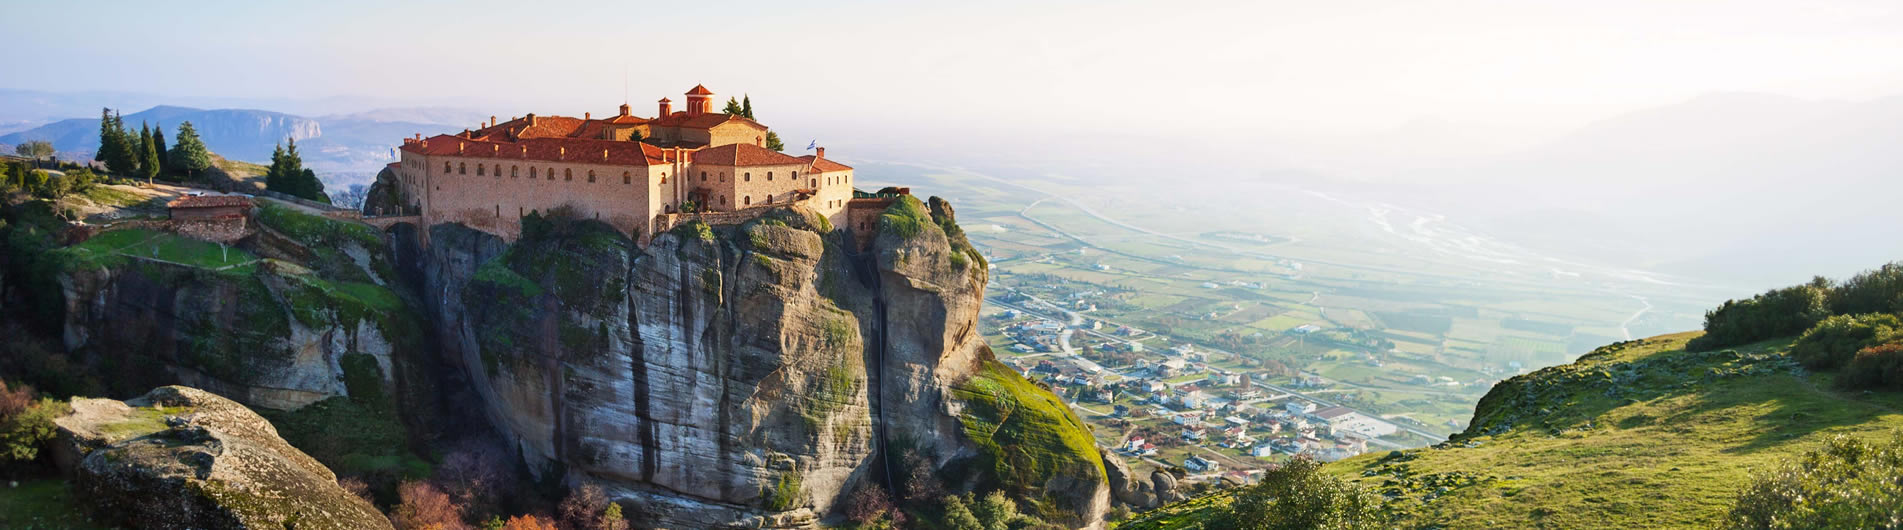 Guided Tours of Greece